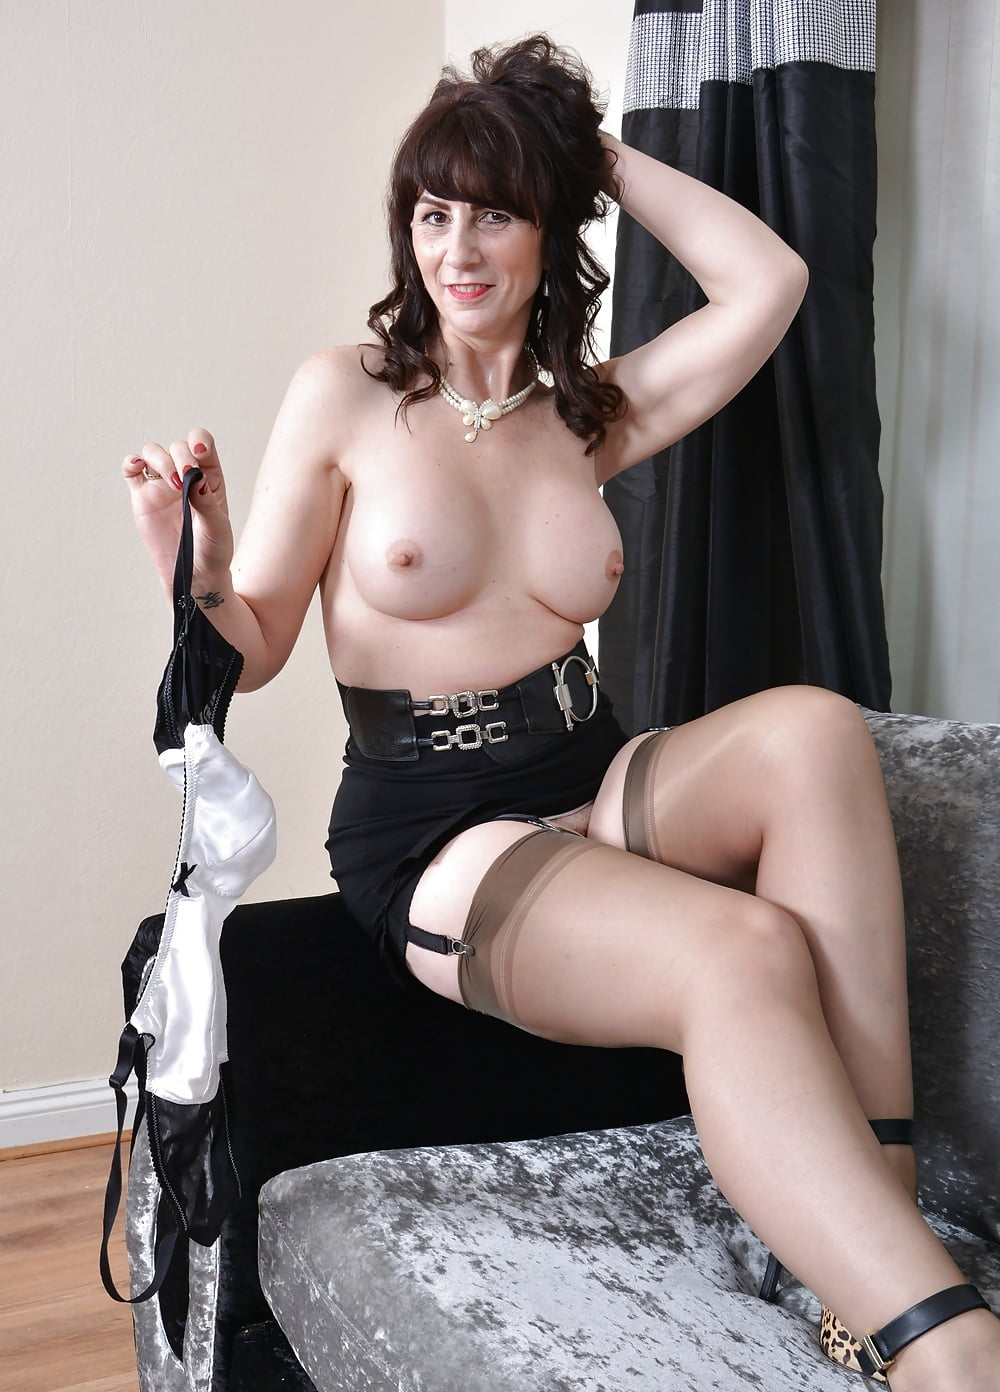 hairy-pussy-ladies-in-stockings